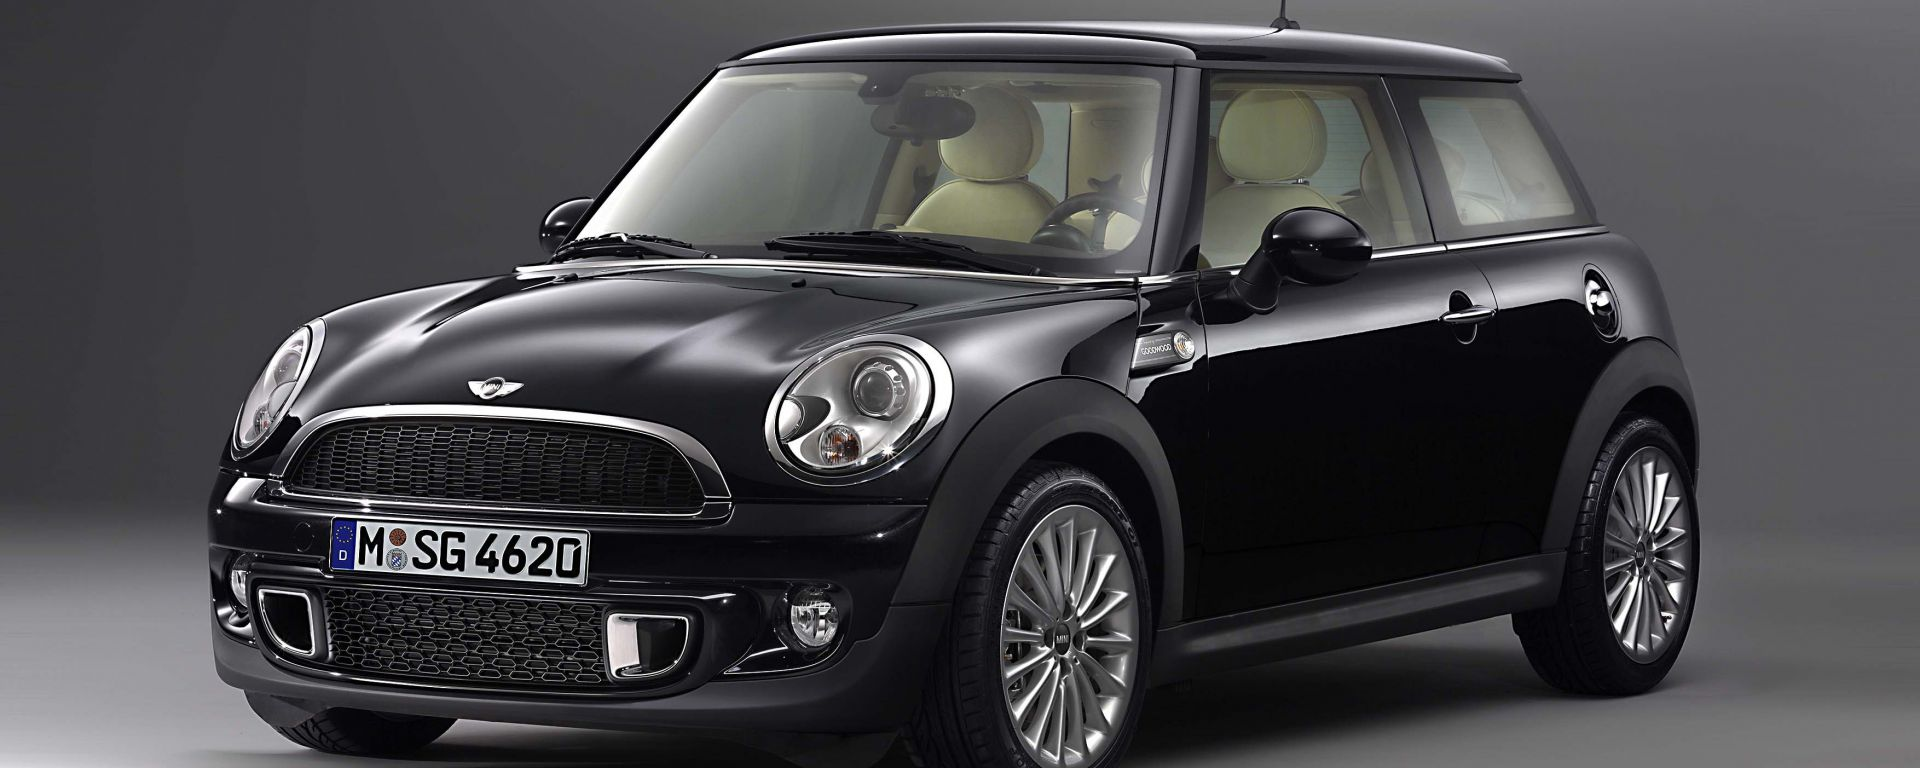 Mini Inspired by Goodwood: in vendita la mini Rolls-Royce